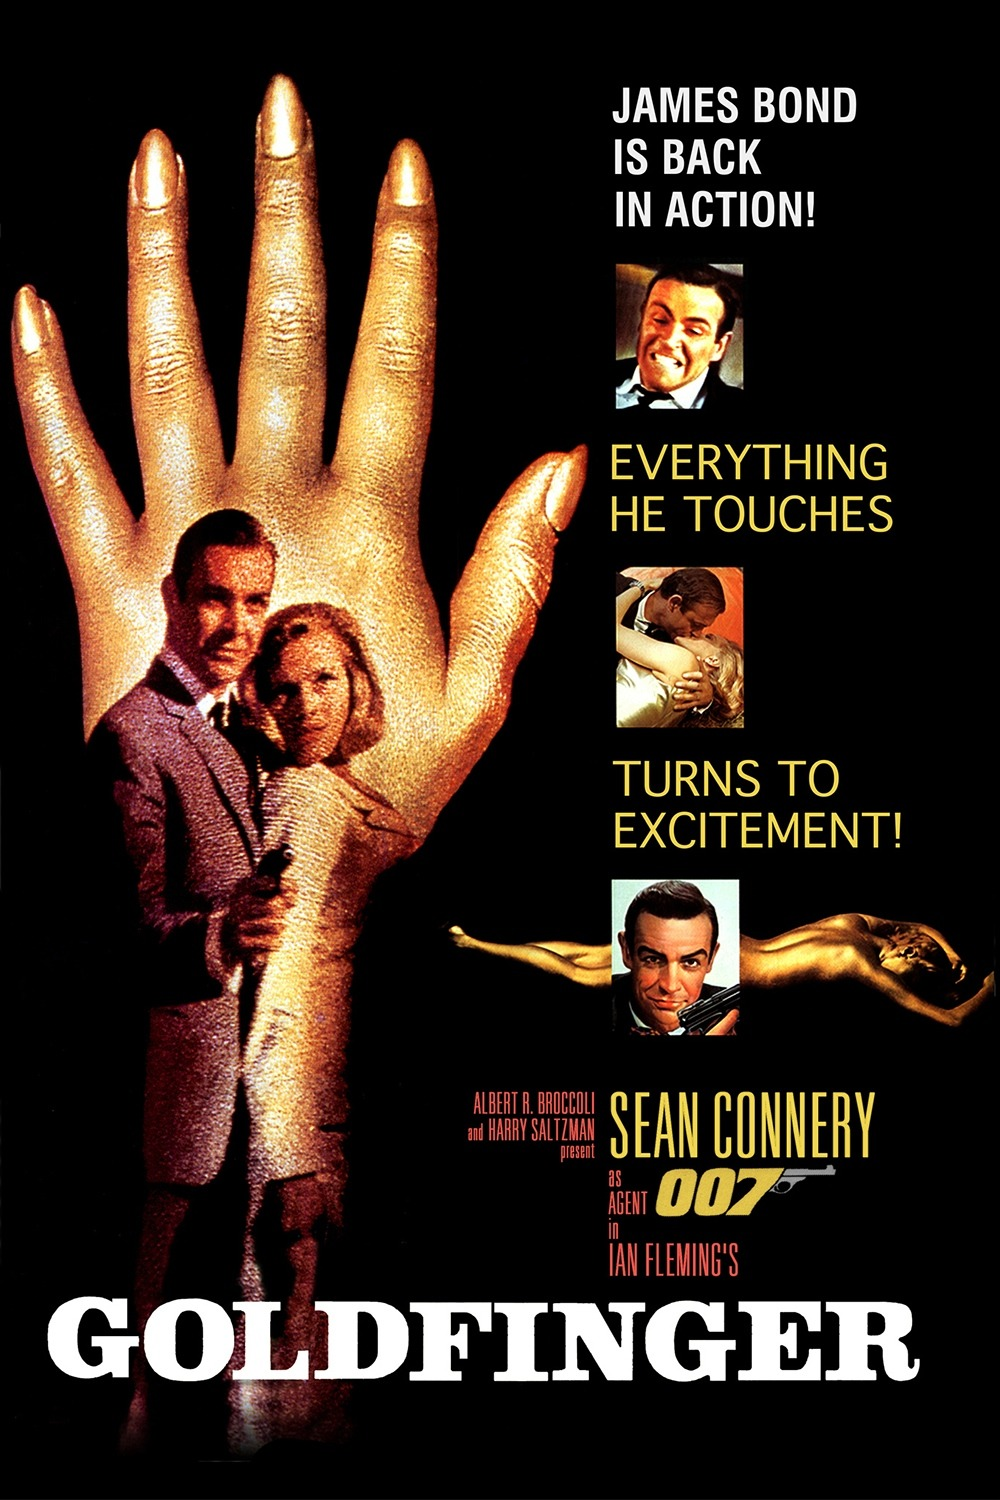 john kenneth muir s reflections on cult movies and classic tv unlike many film critics i do not count goldfinger 1964 as the absolute best james bond film of all time you can check out my rankings of the 007